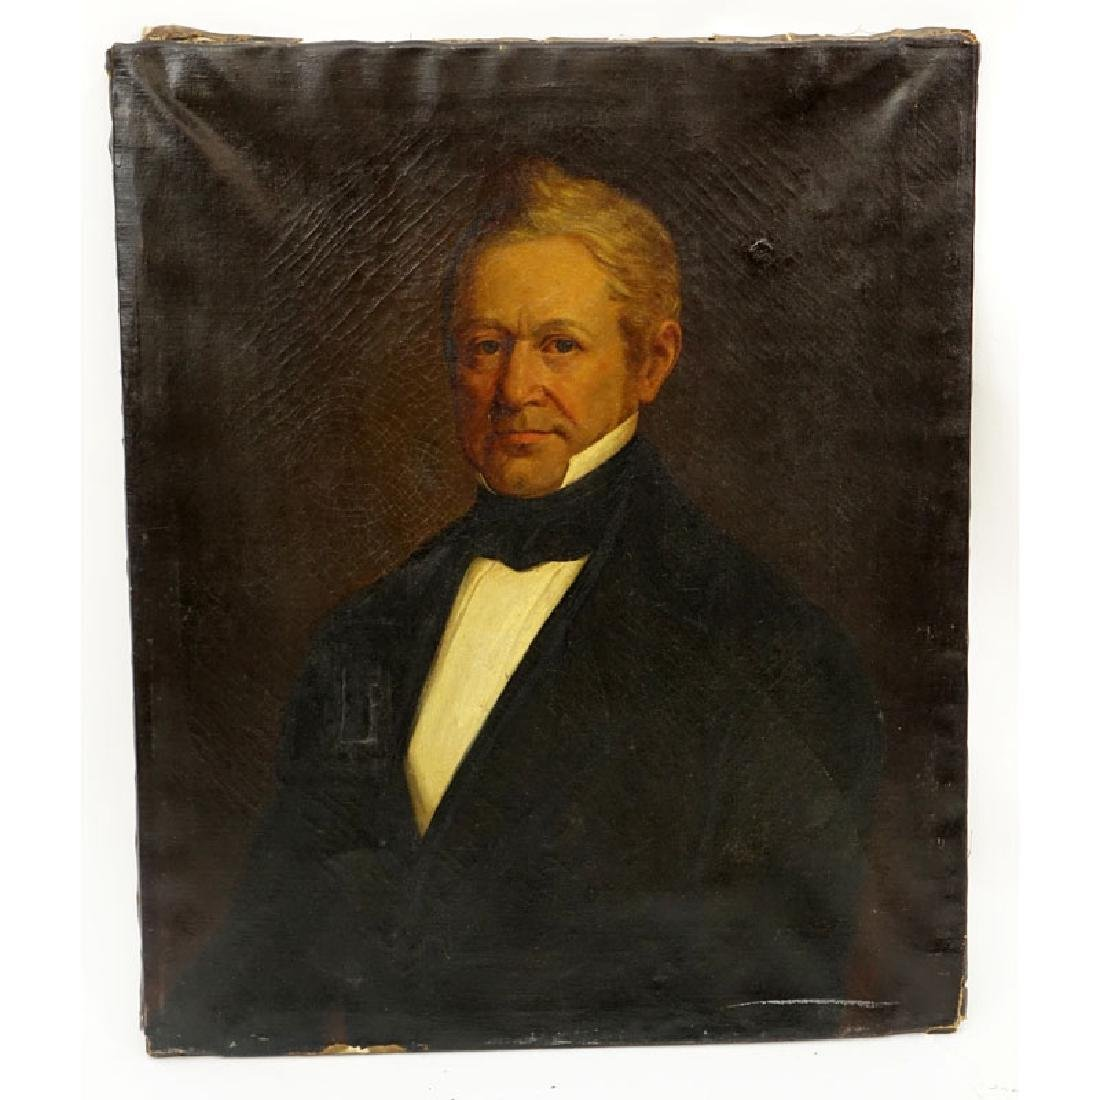 Circa 1860 American Oil on Canvas, Portrait of a